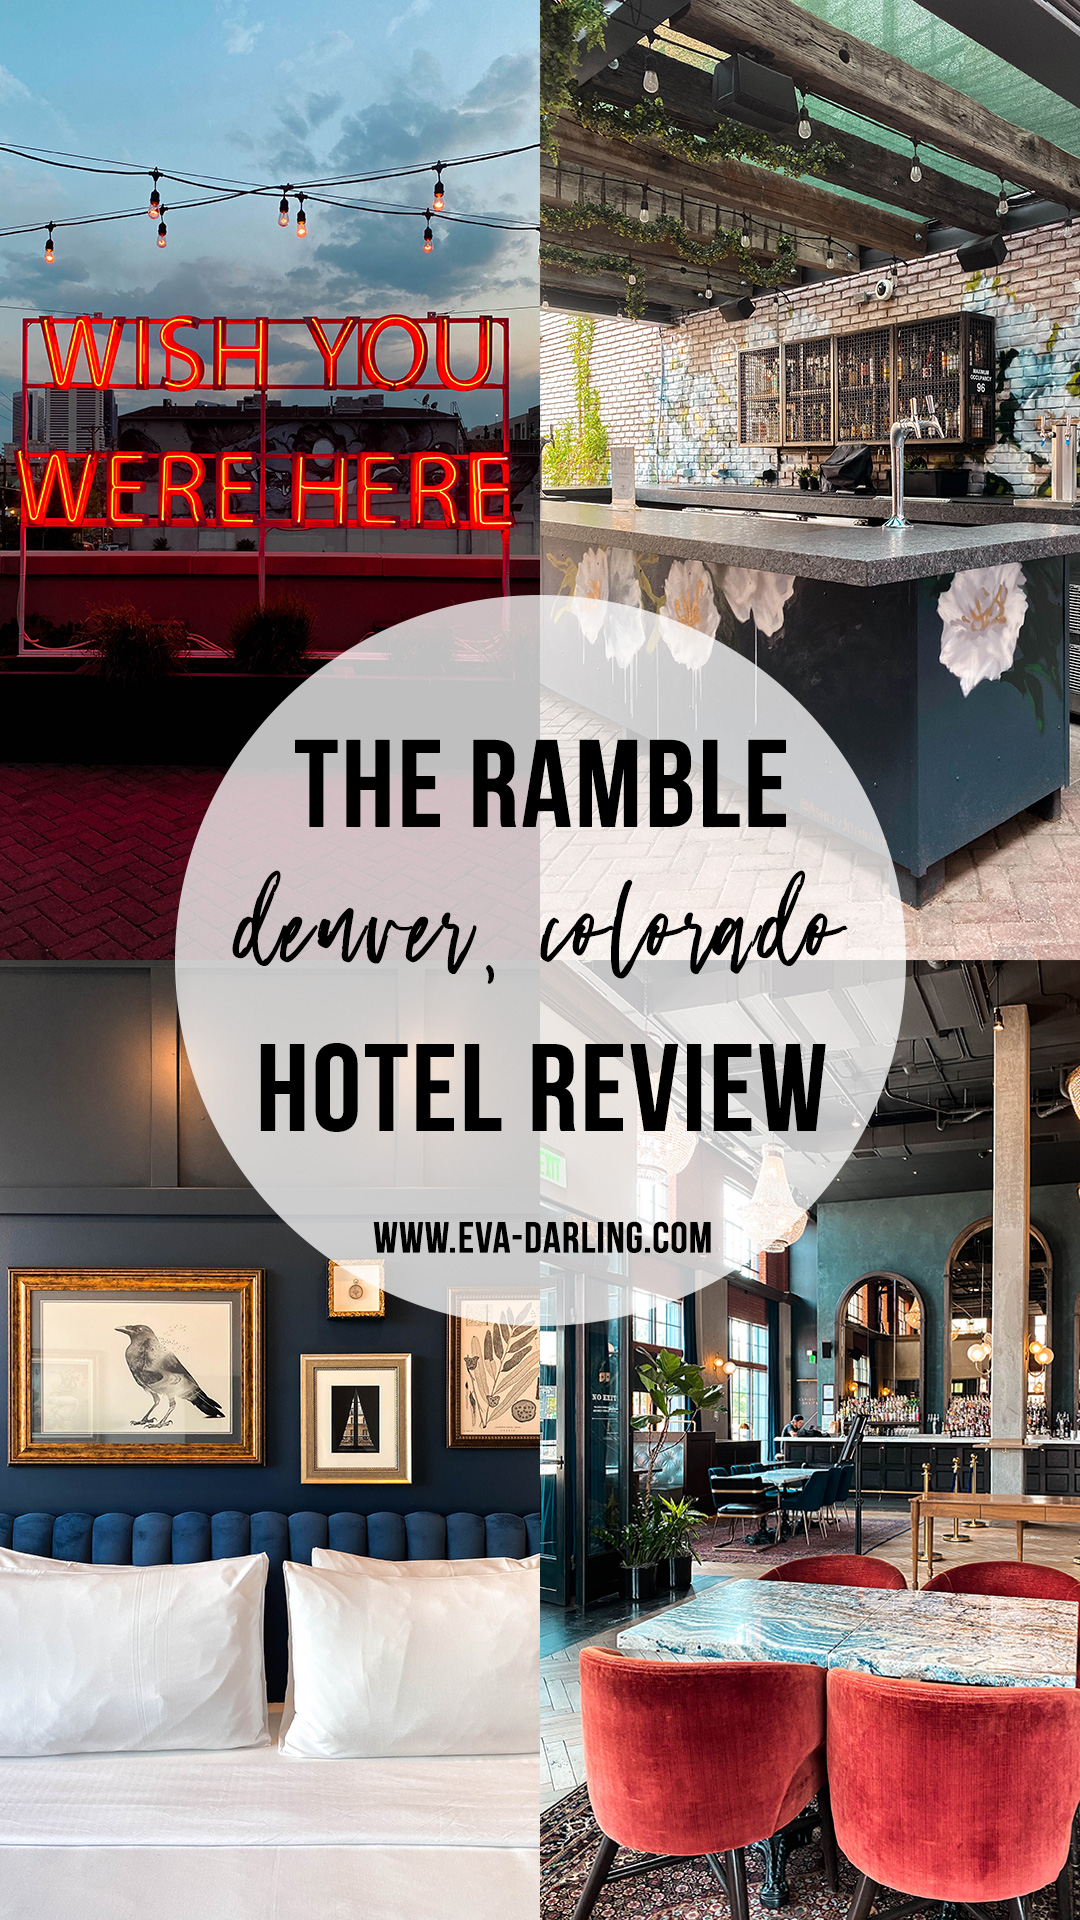 the ramble hotel review instagrammable photo location rino denver colorado where to stay best hotel luxury boutique hotel king room white bedding death and co the garden rooftop patio bar